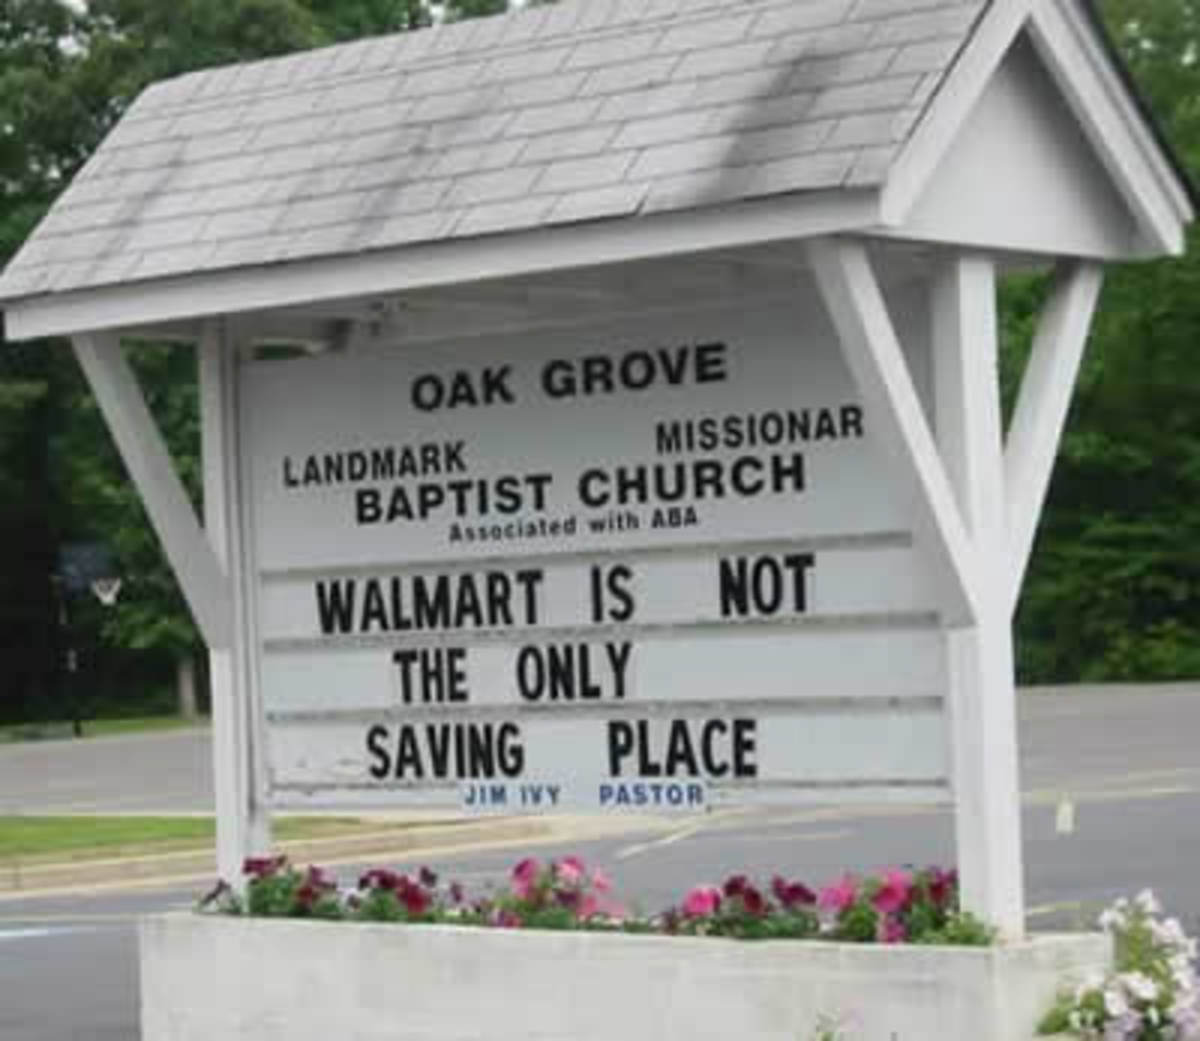 Church sign - Walmart is not the only saving place